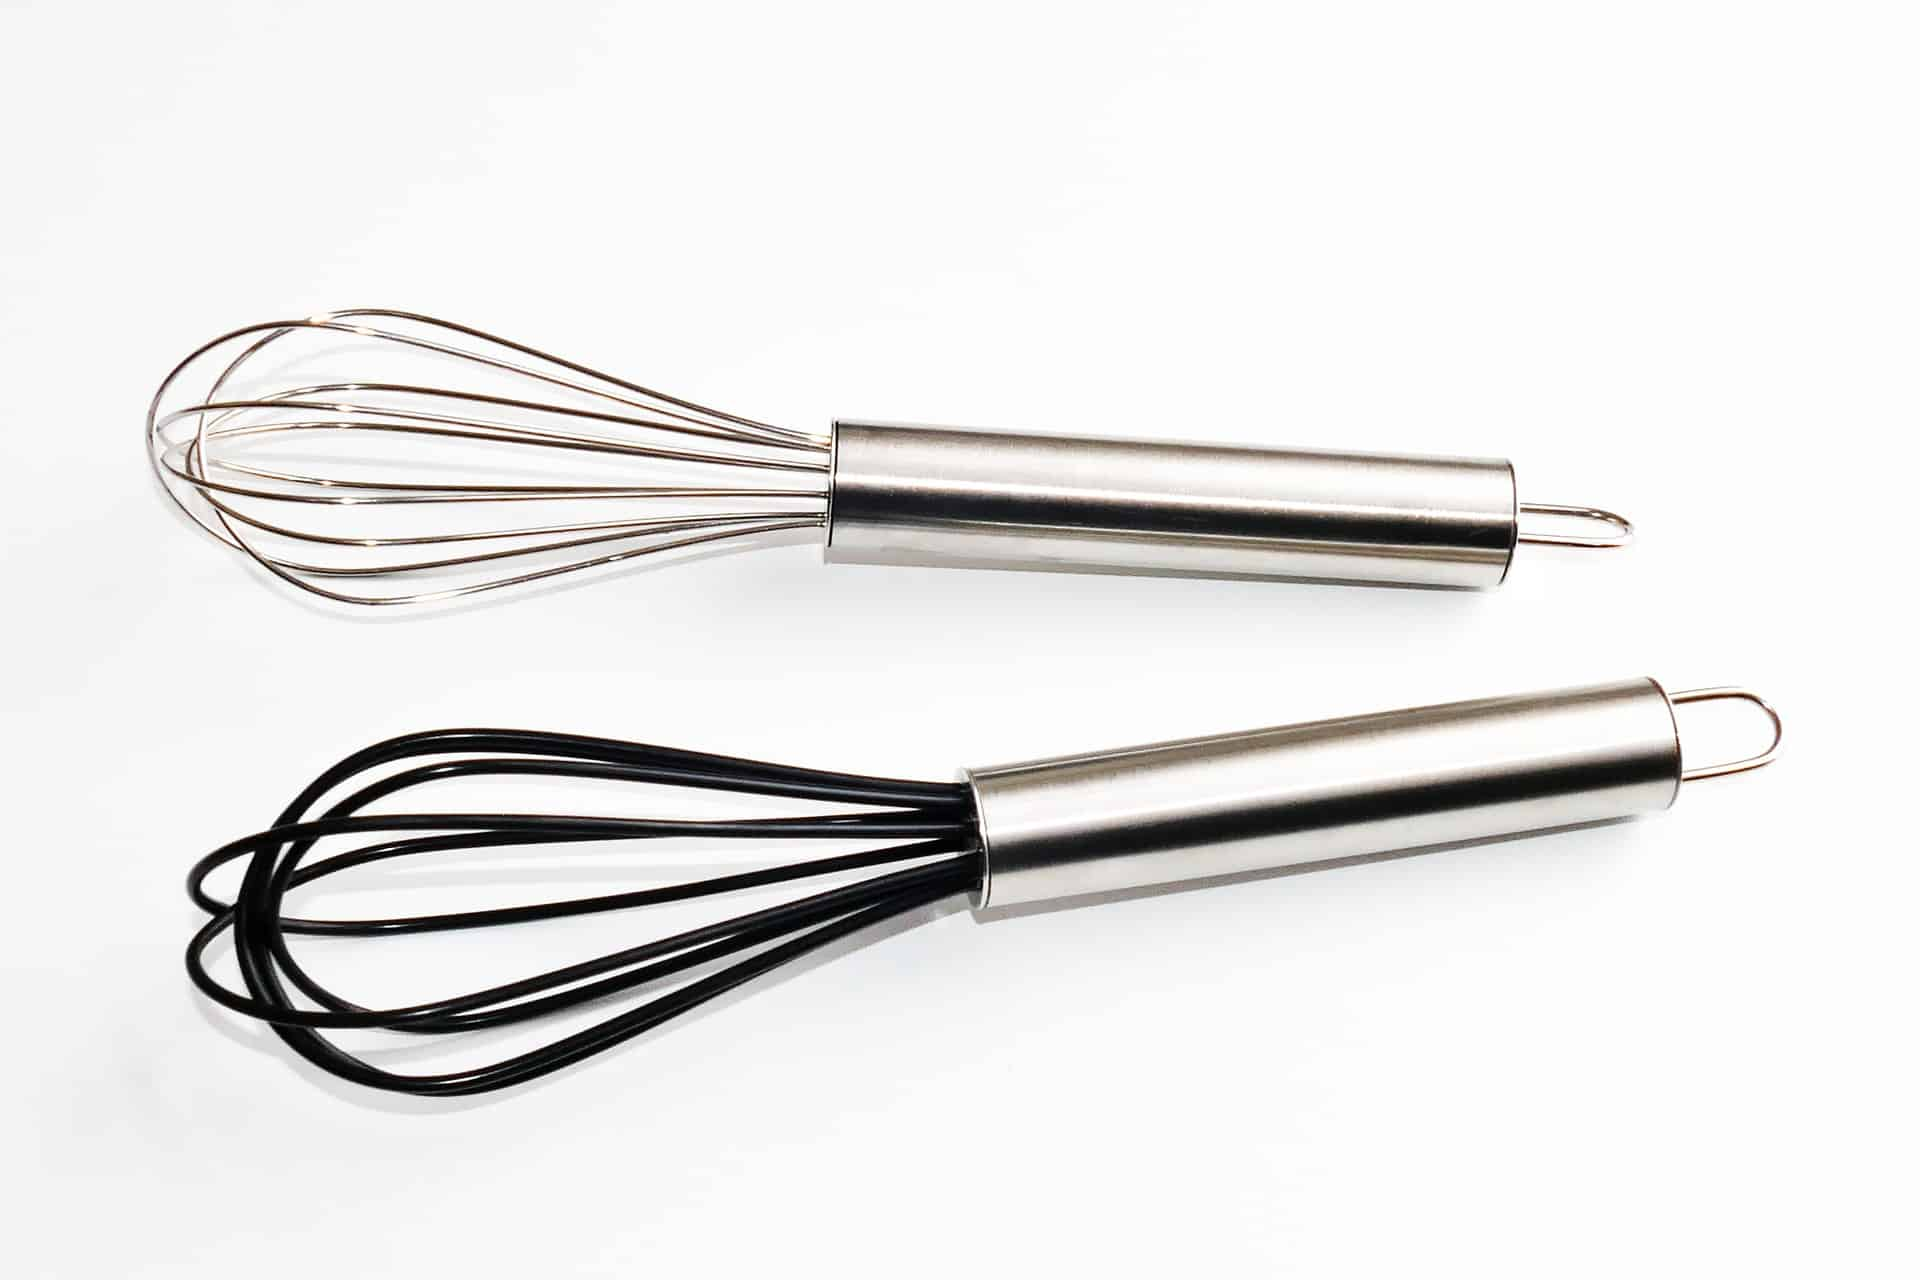 2 whisks on a white table